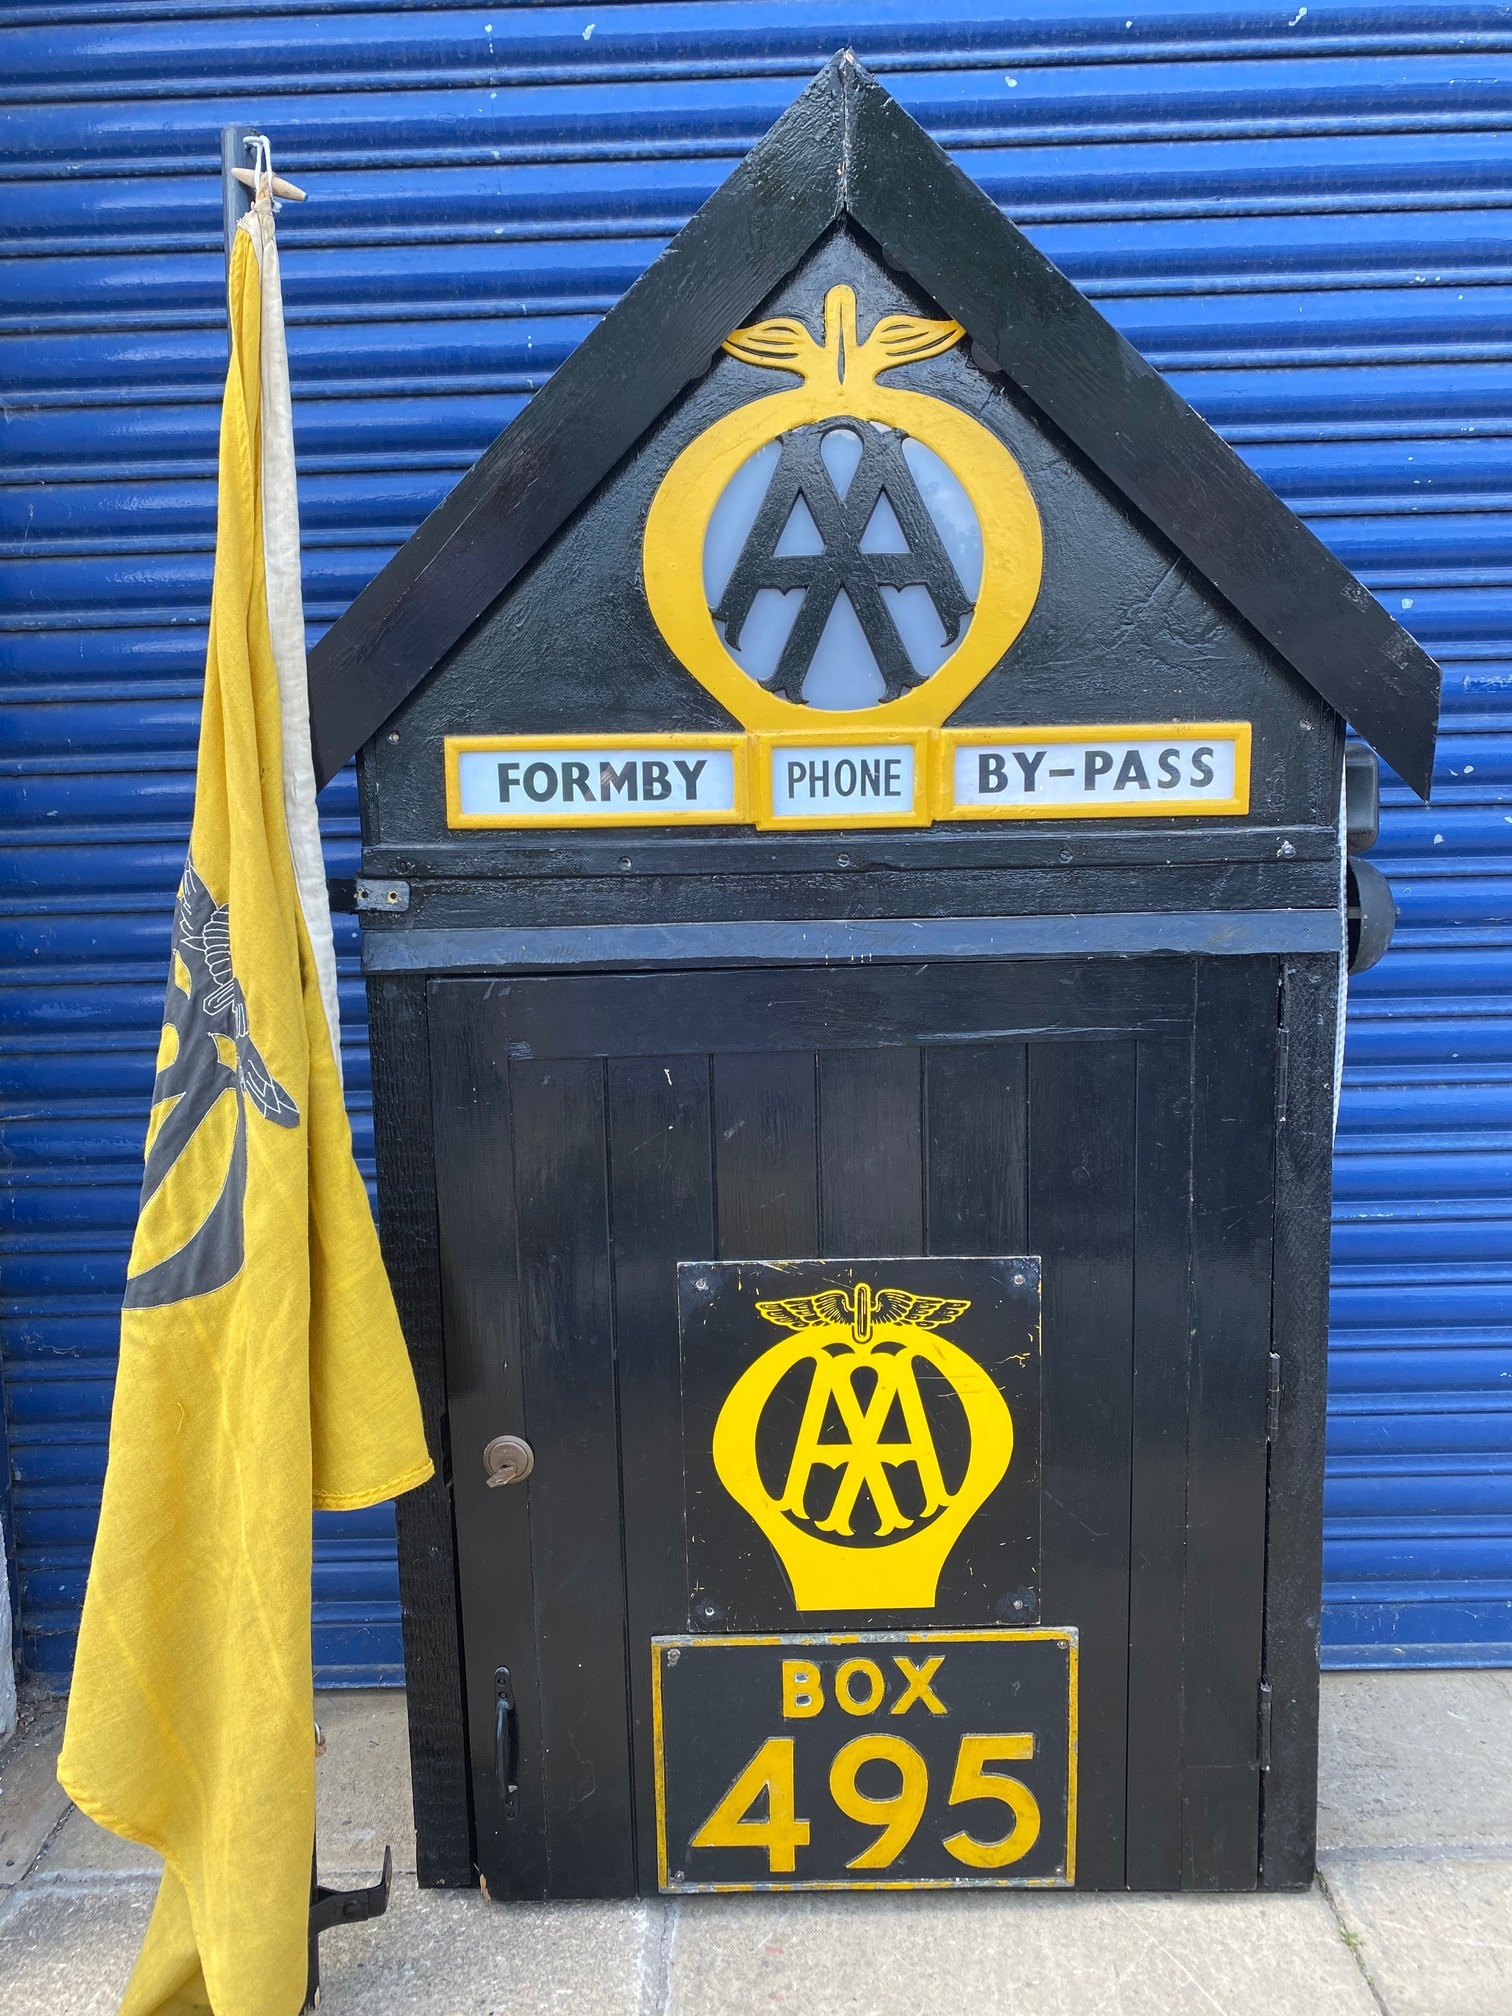 The complete contents and signage from the original AA Formby box, no. 495, removed when the box was